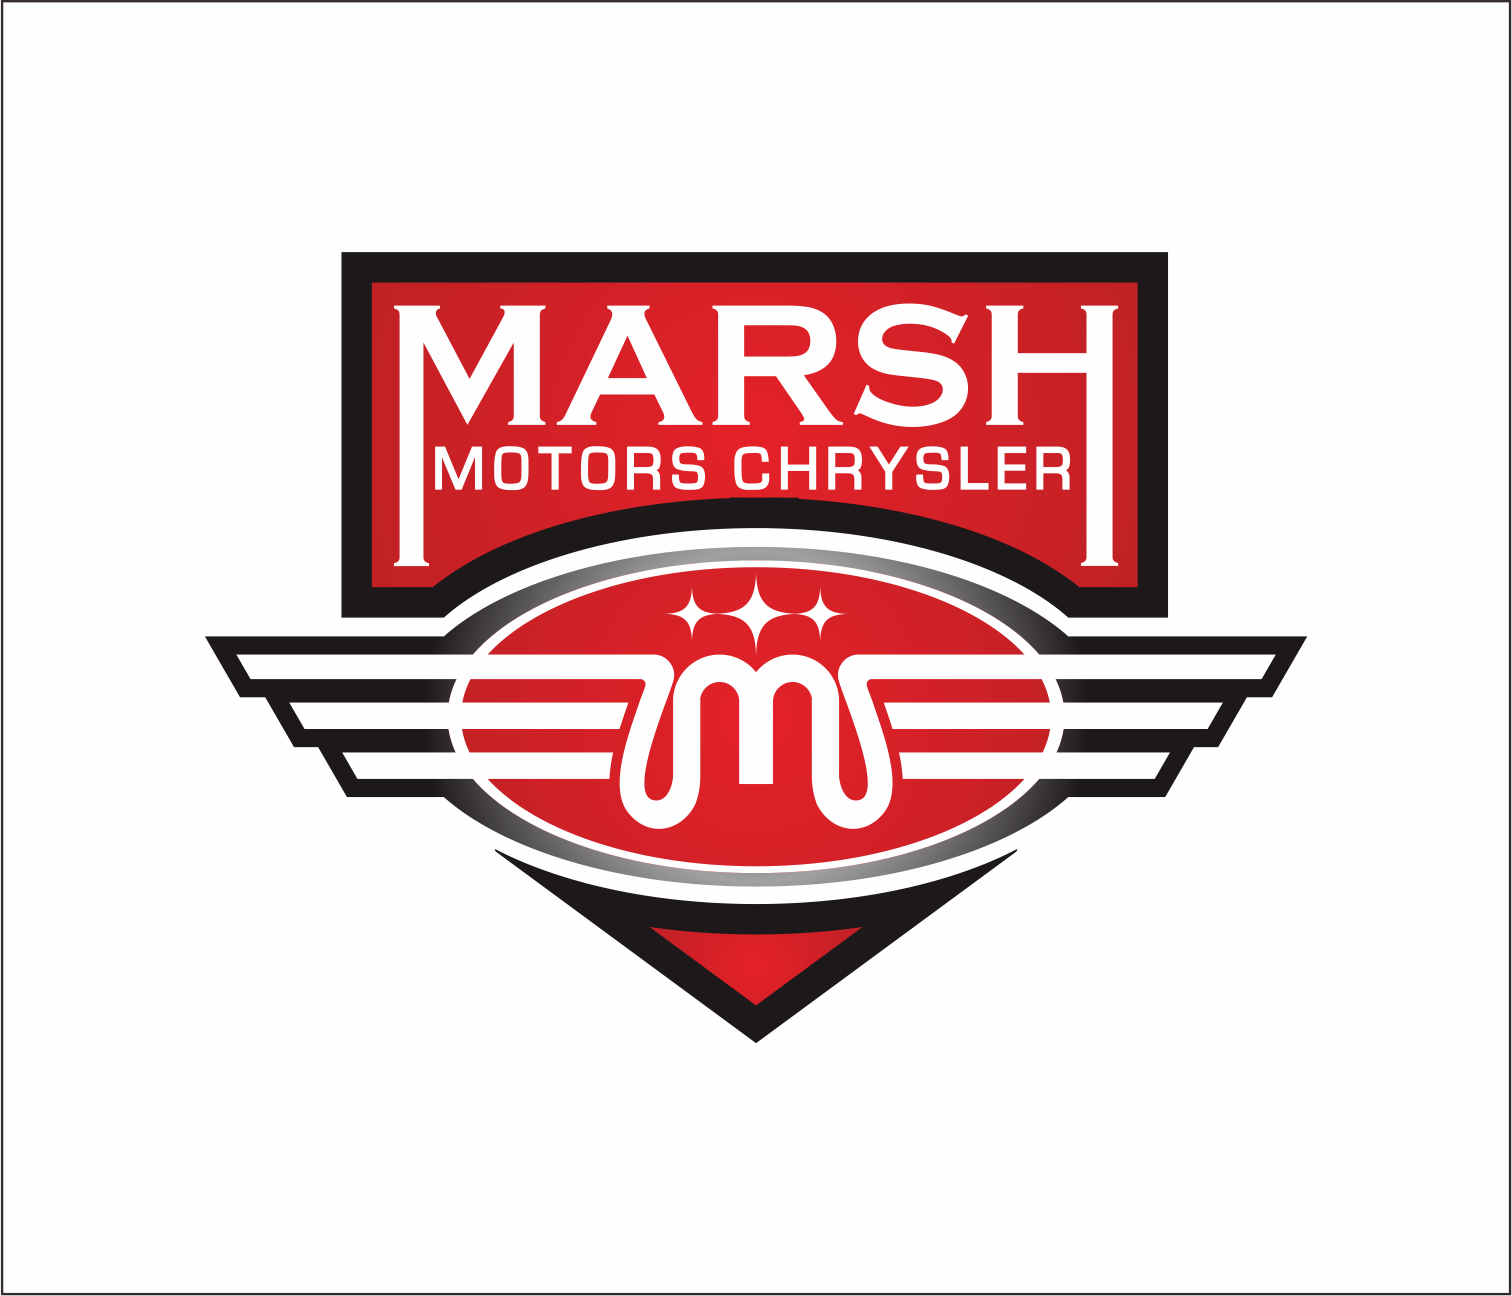 Logo Design by Armada Jamaluddin - Entry No. 21 in the Logo Design Contest Marsh Motors Chrysler Logo Design.